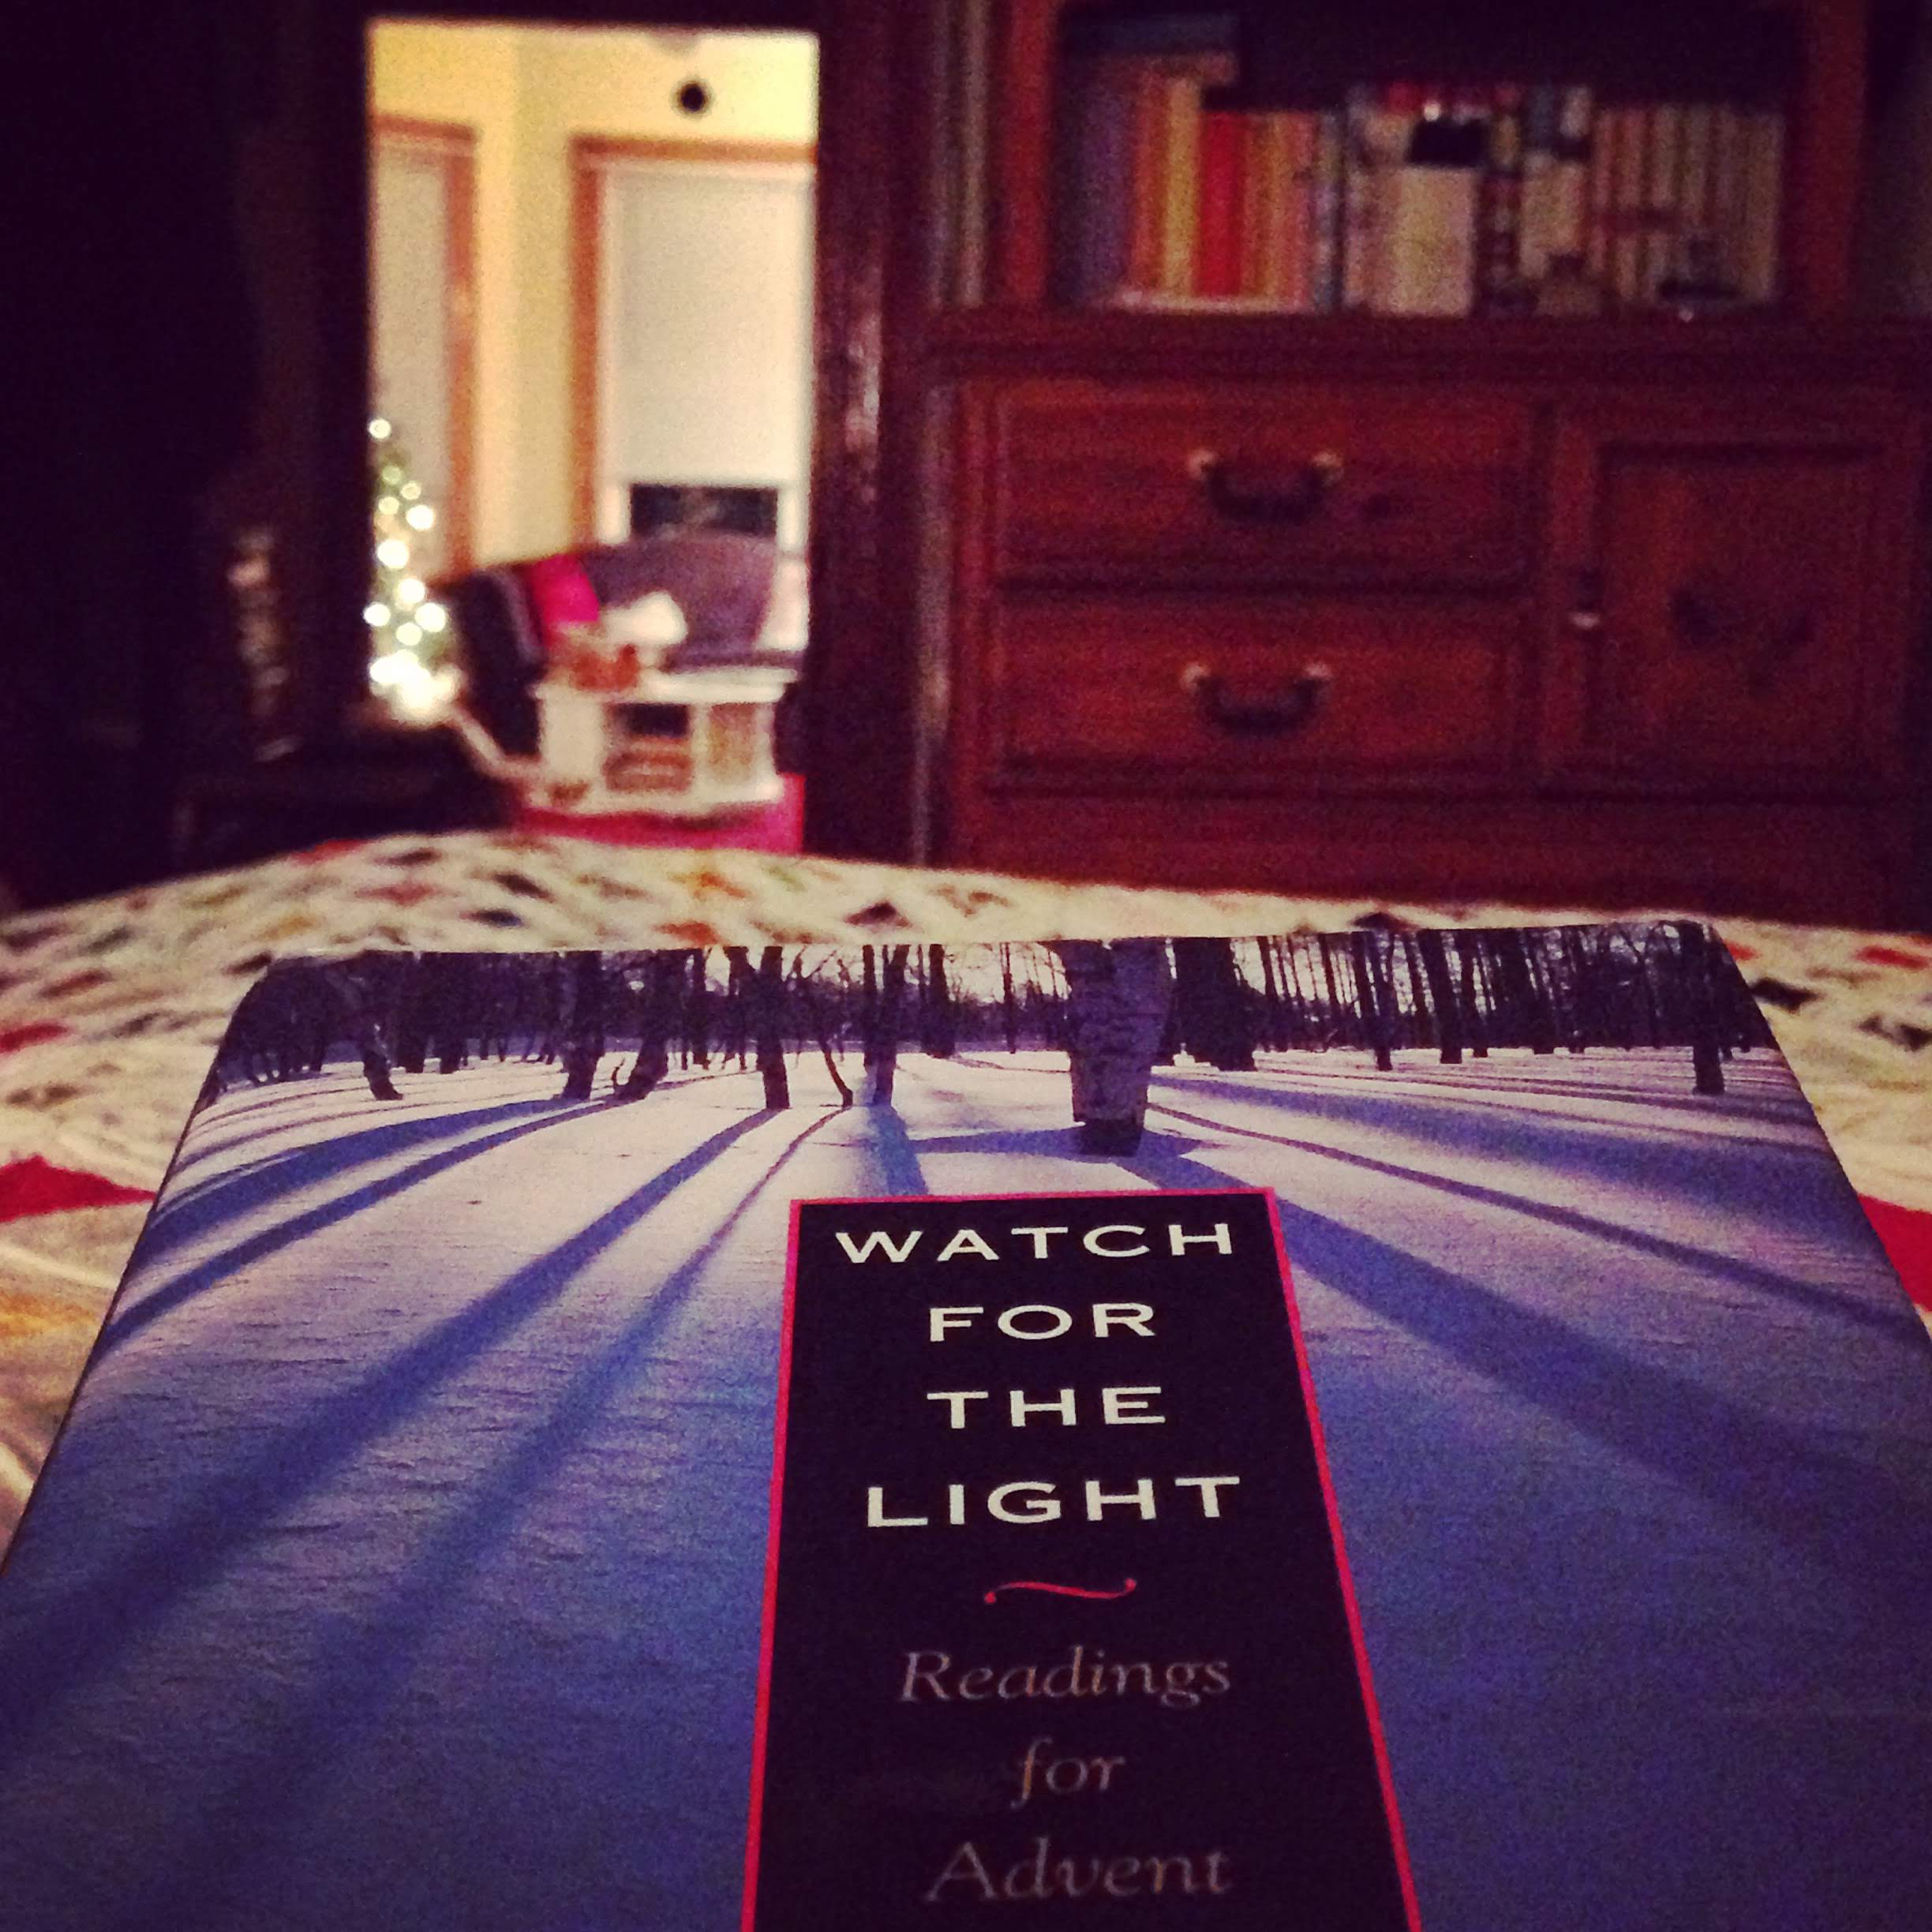 watch for the light book bed Christmas tree